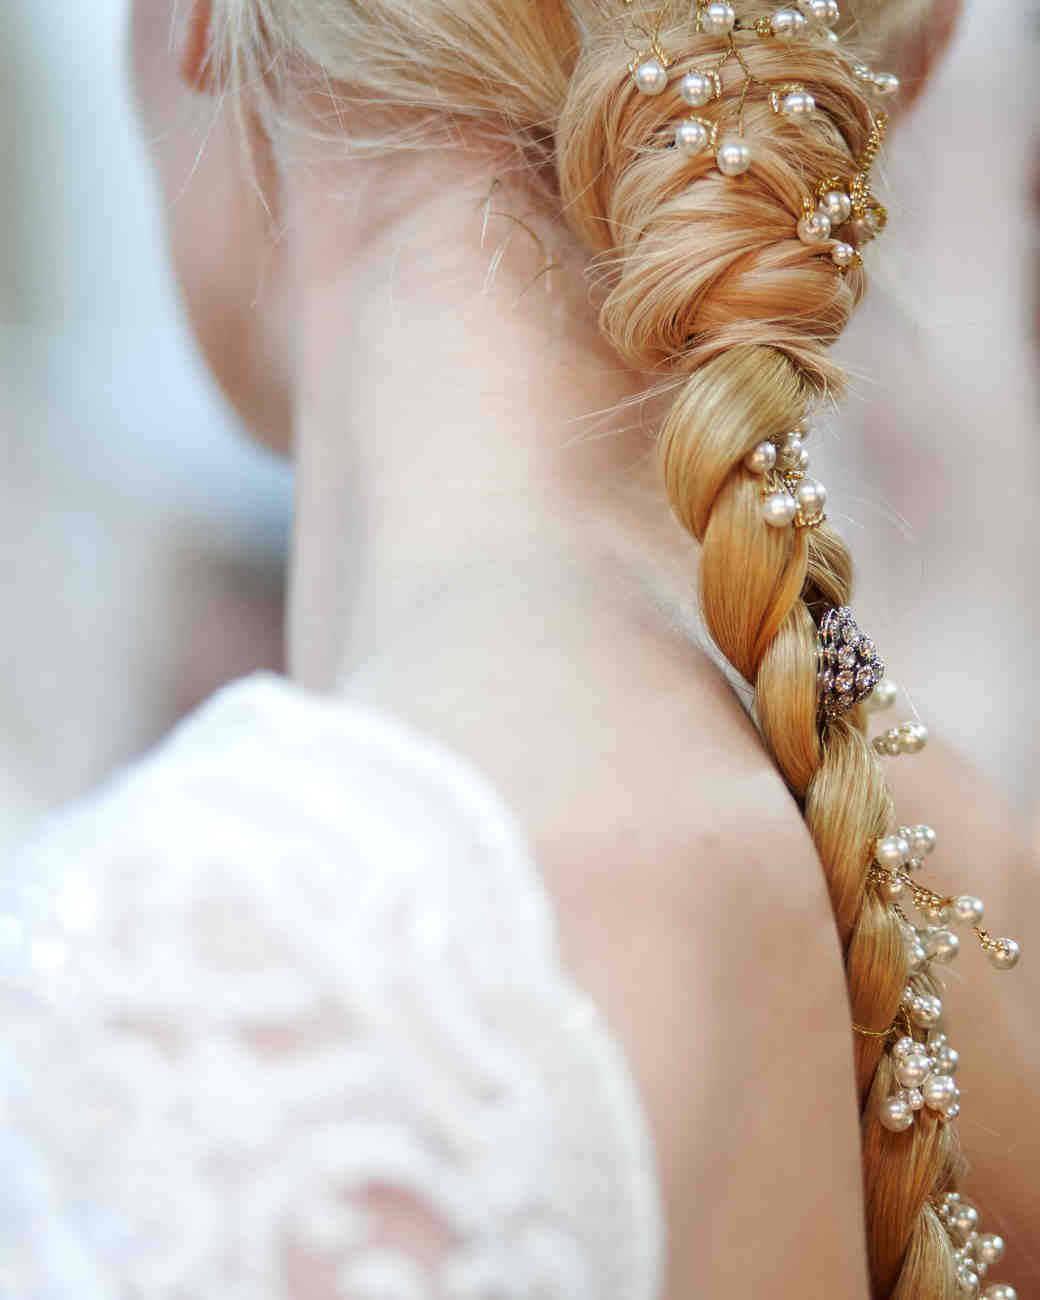 Wedding Hairstyles Bride: Wedding Hairstyles For Bows, Buds, Tiaras, And More From